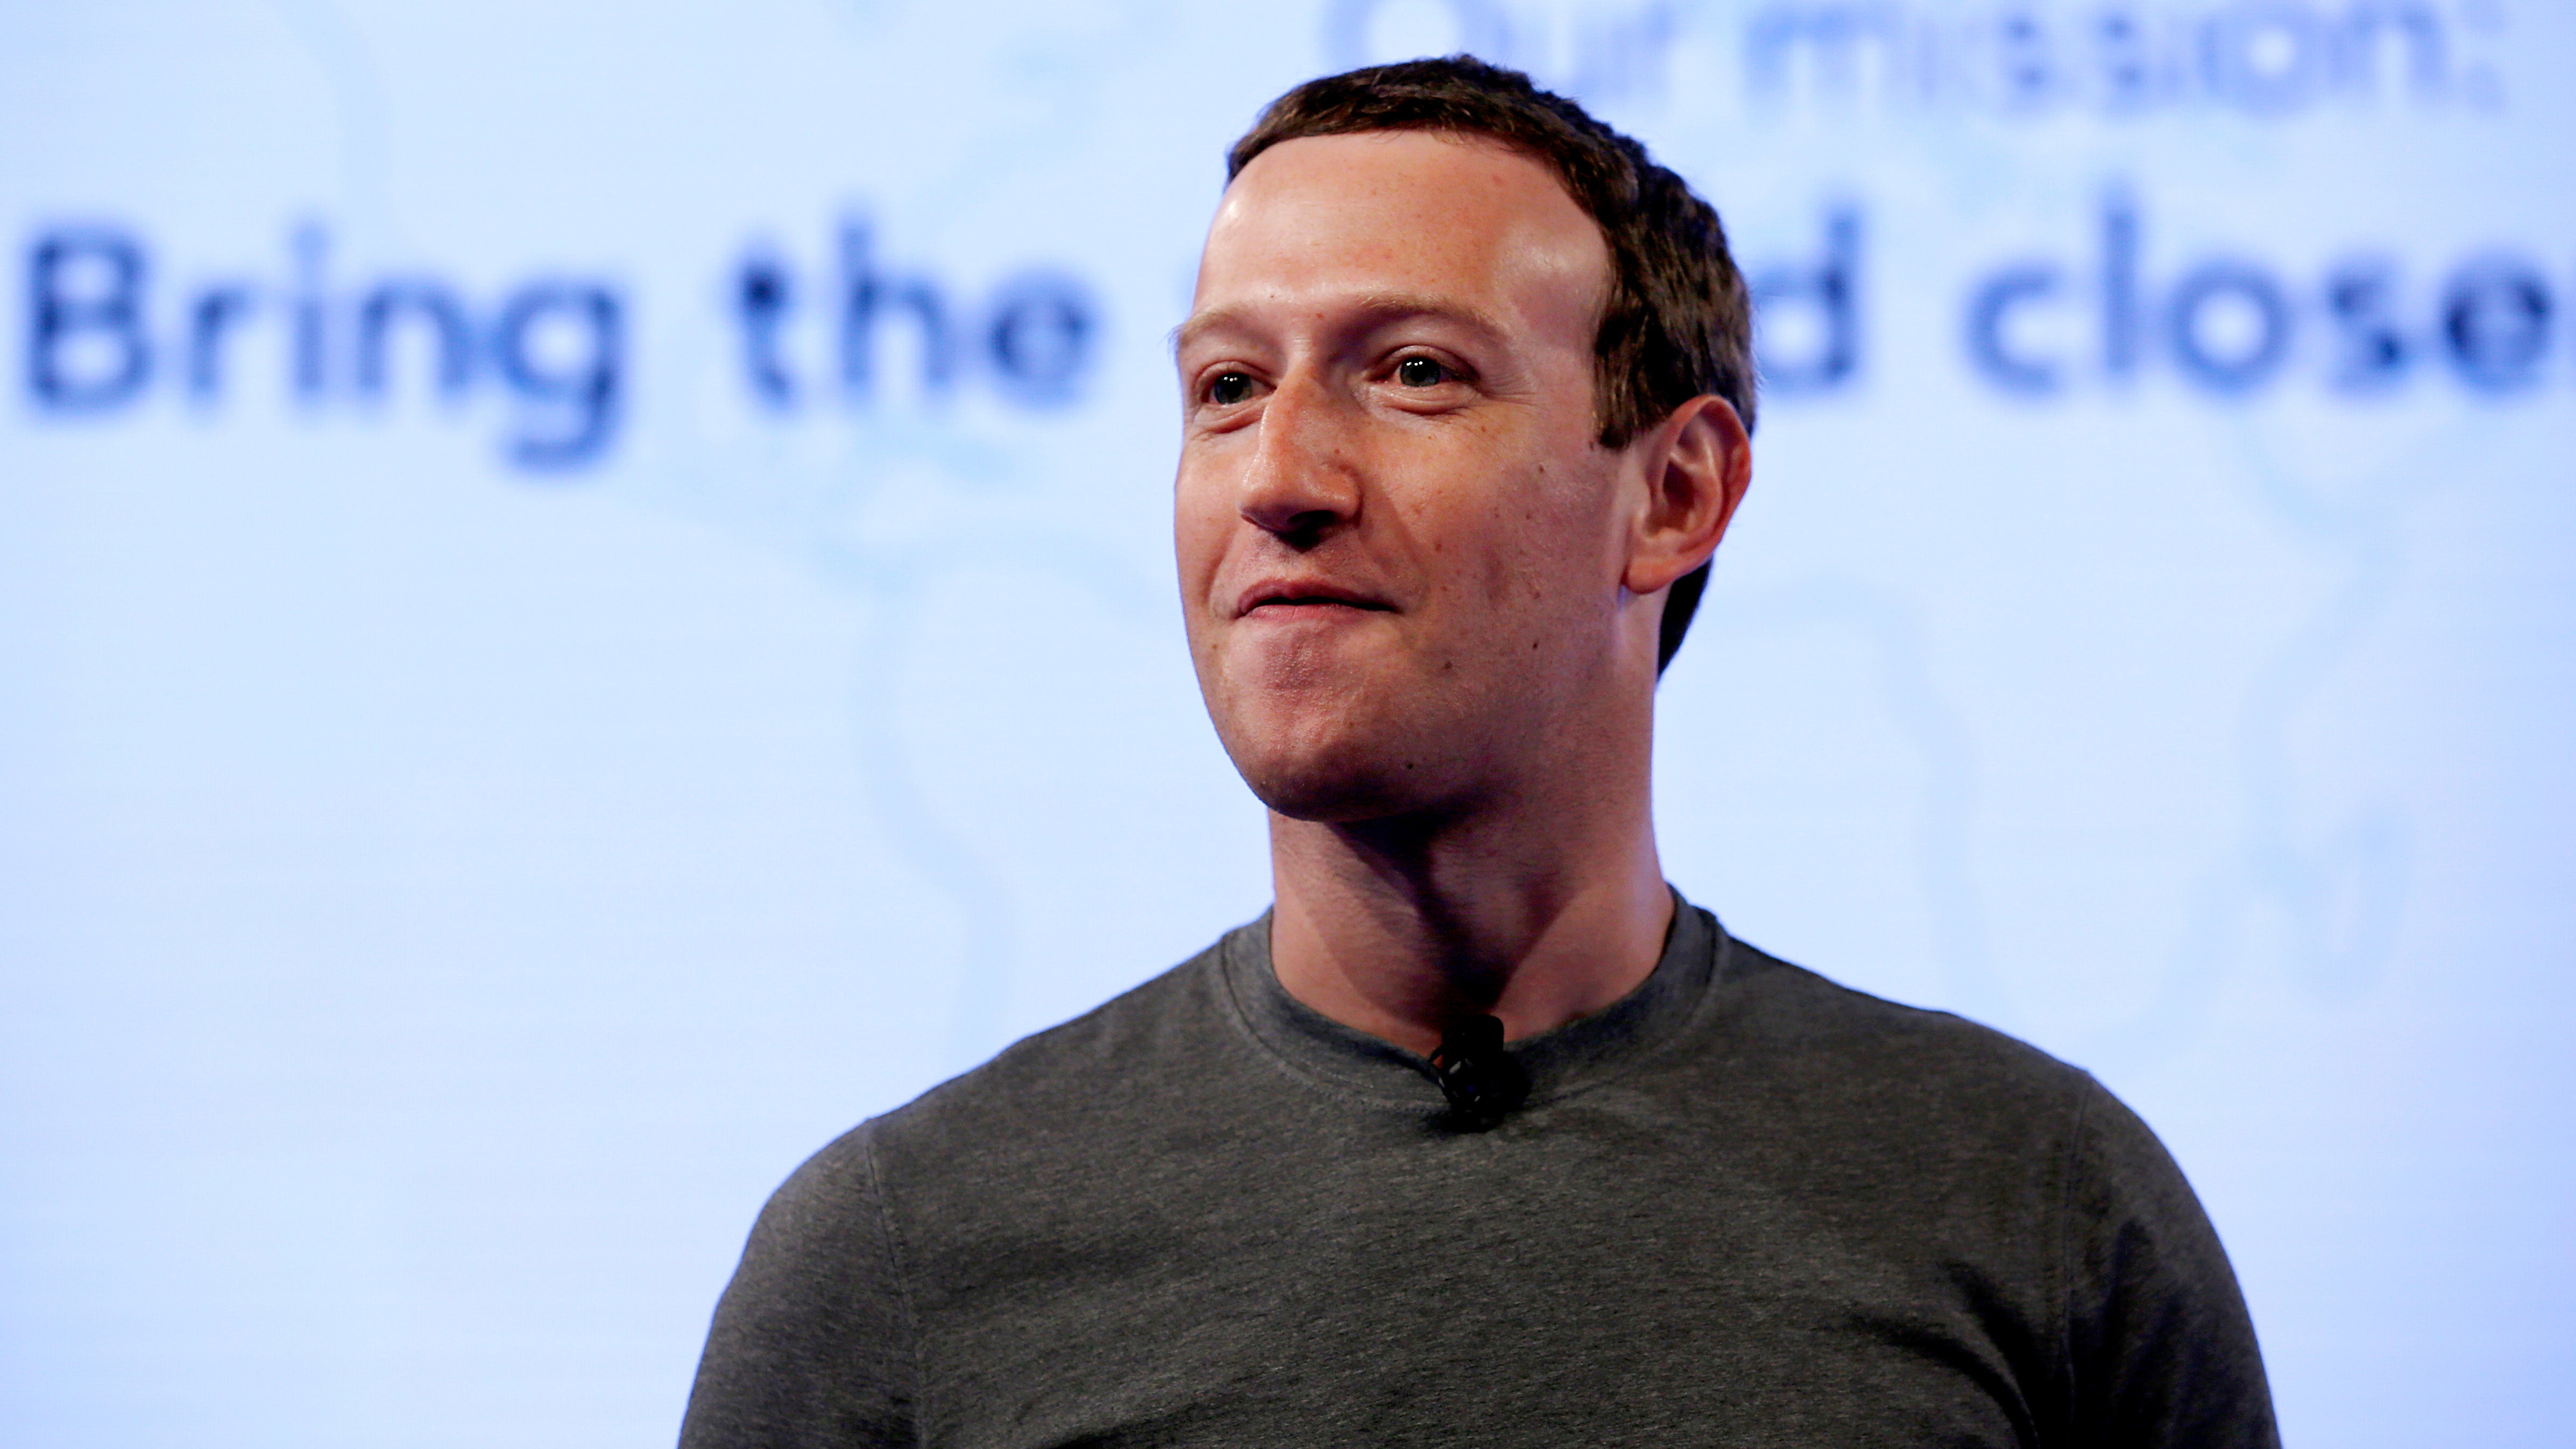 Why Mark Zuckerberg Is Headed To Court, Explained